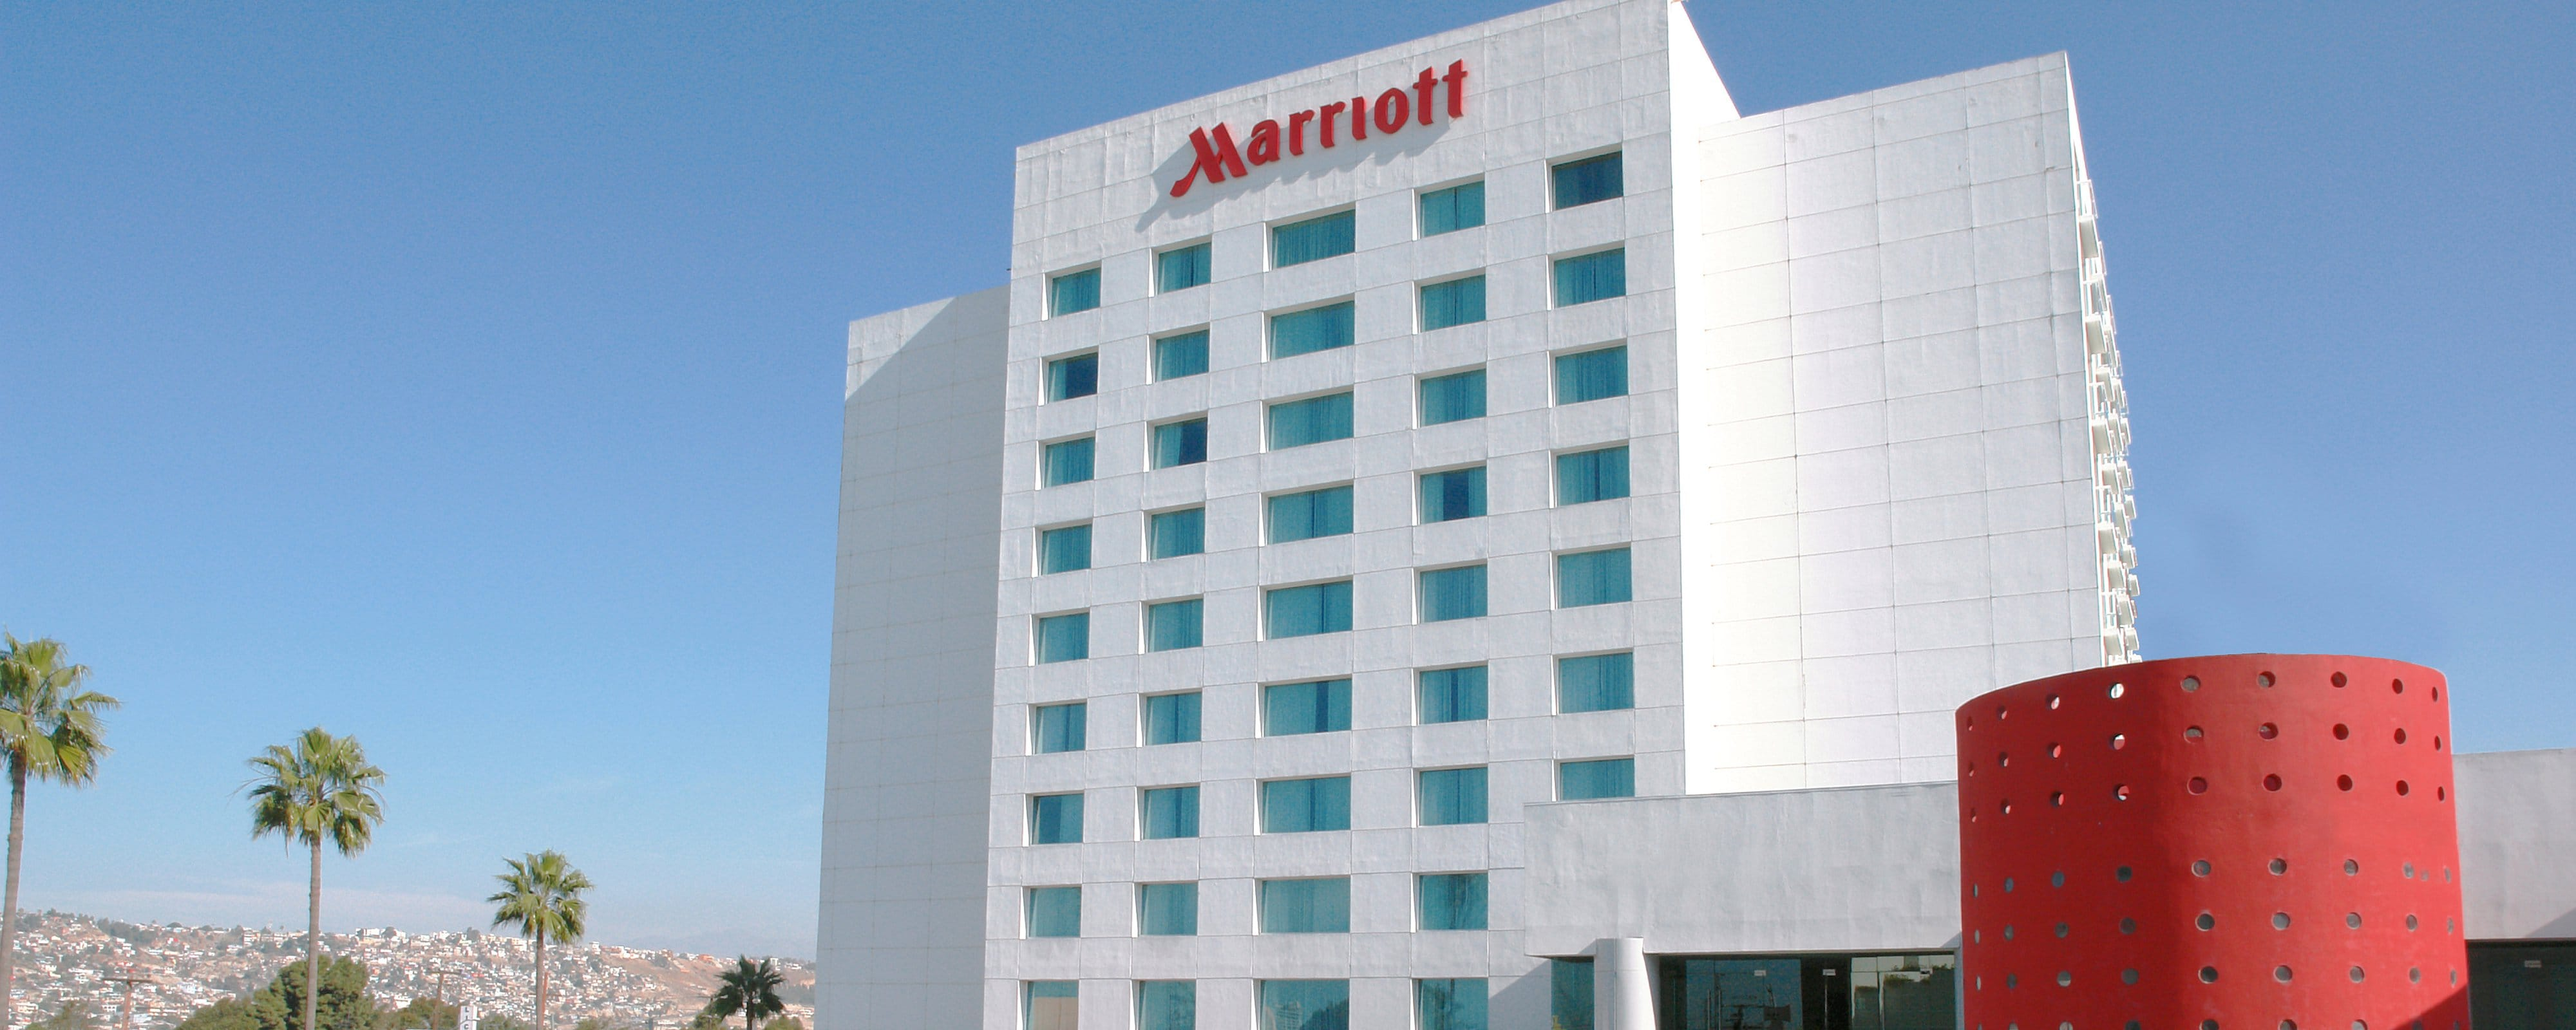 Tijuana Marriott Hotel